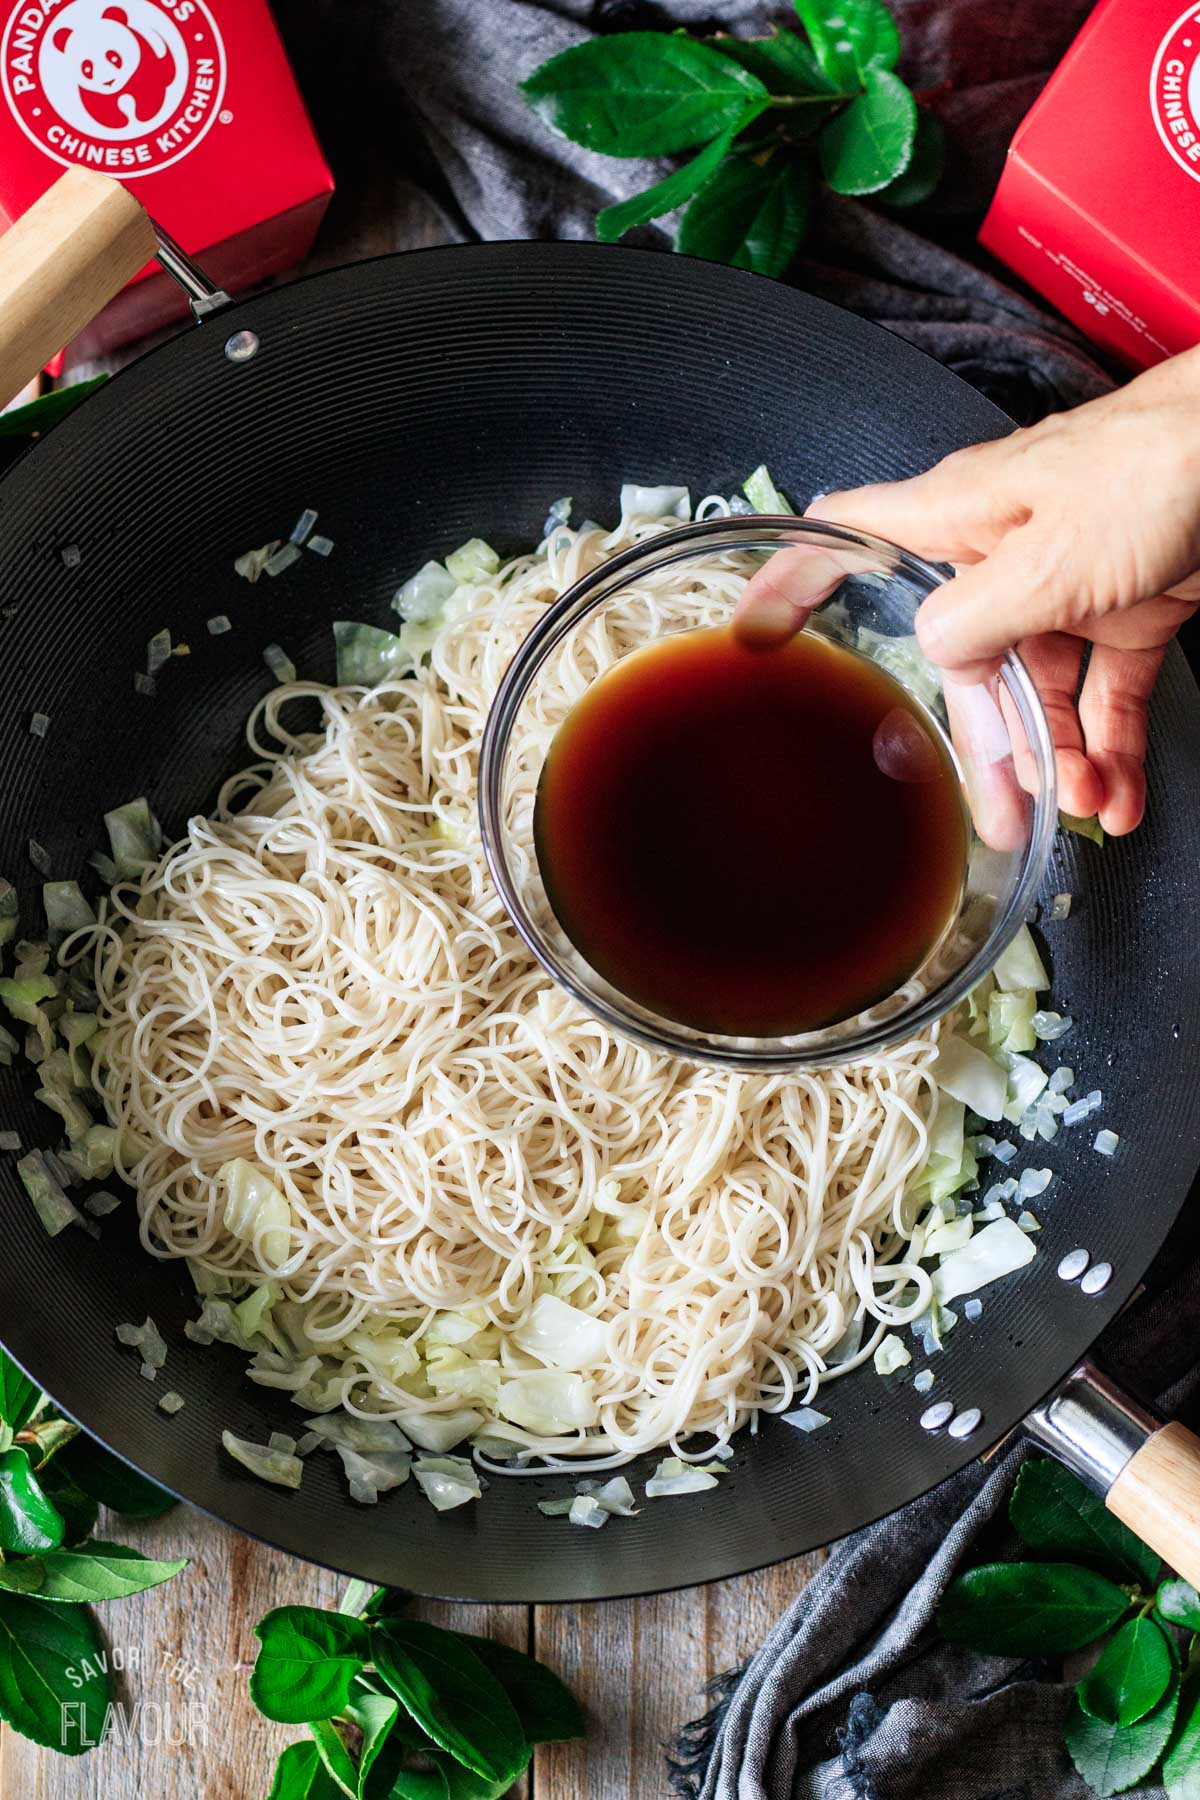 pouring the sauce on the cooked noodles and veggies